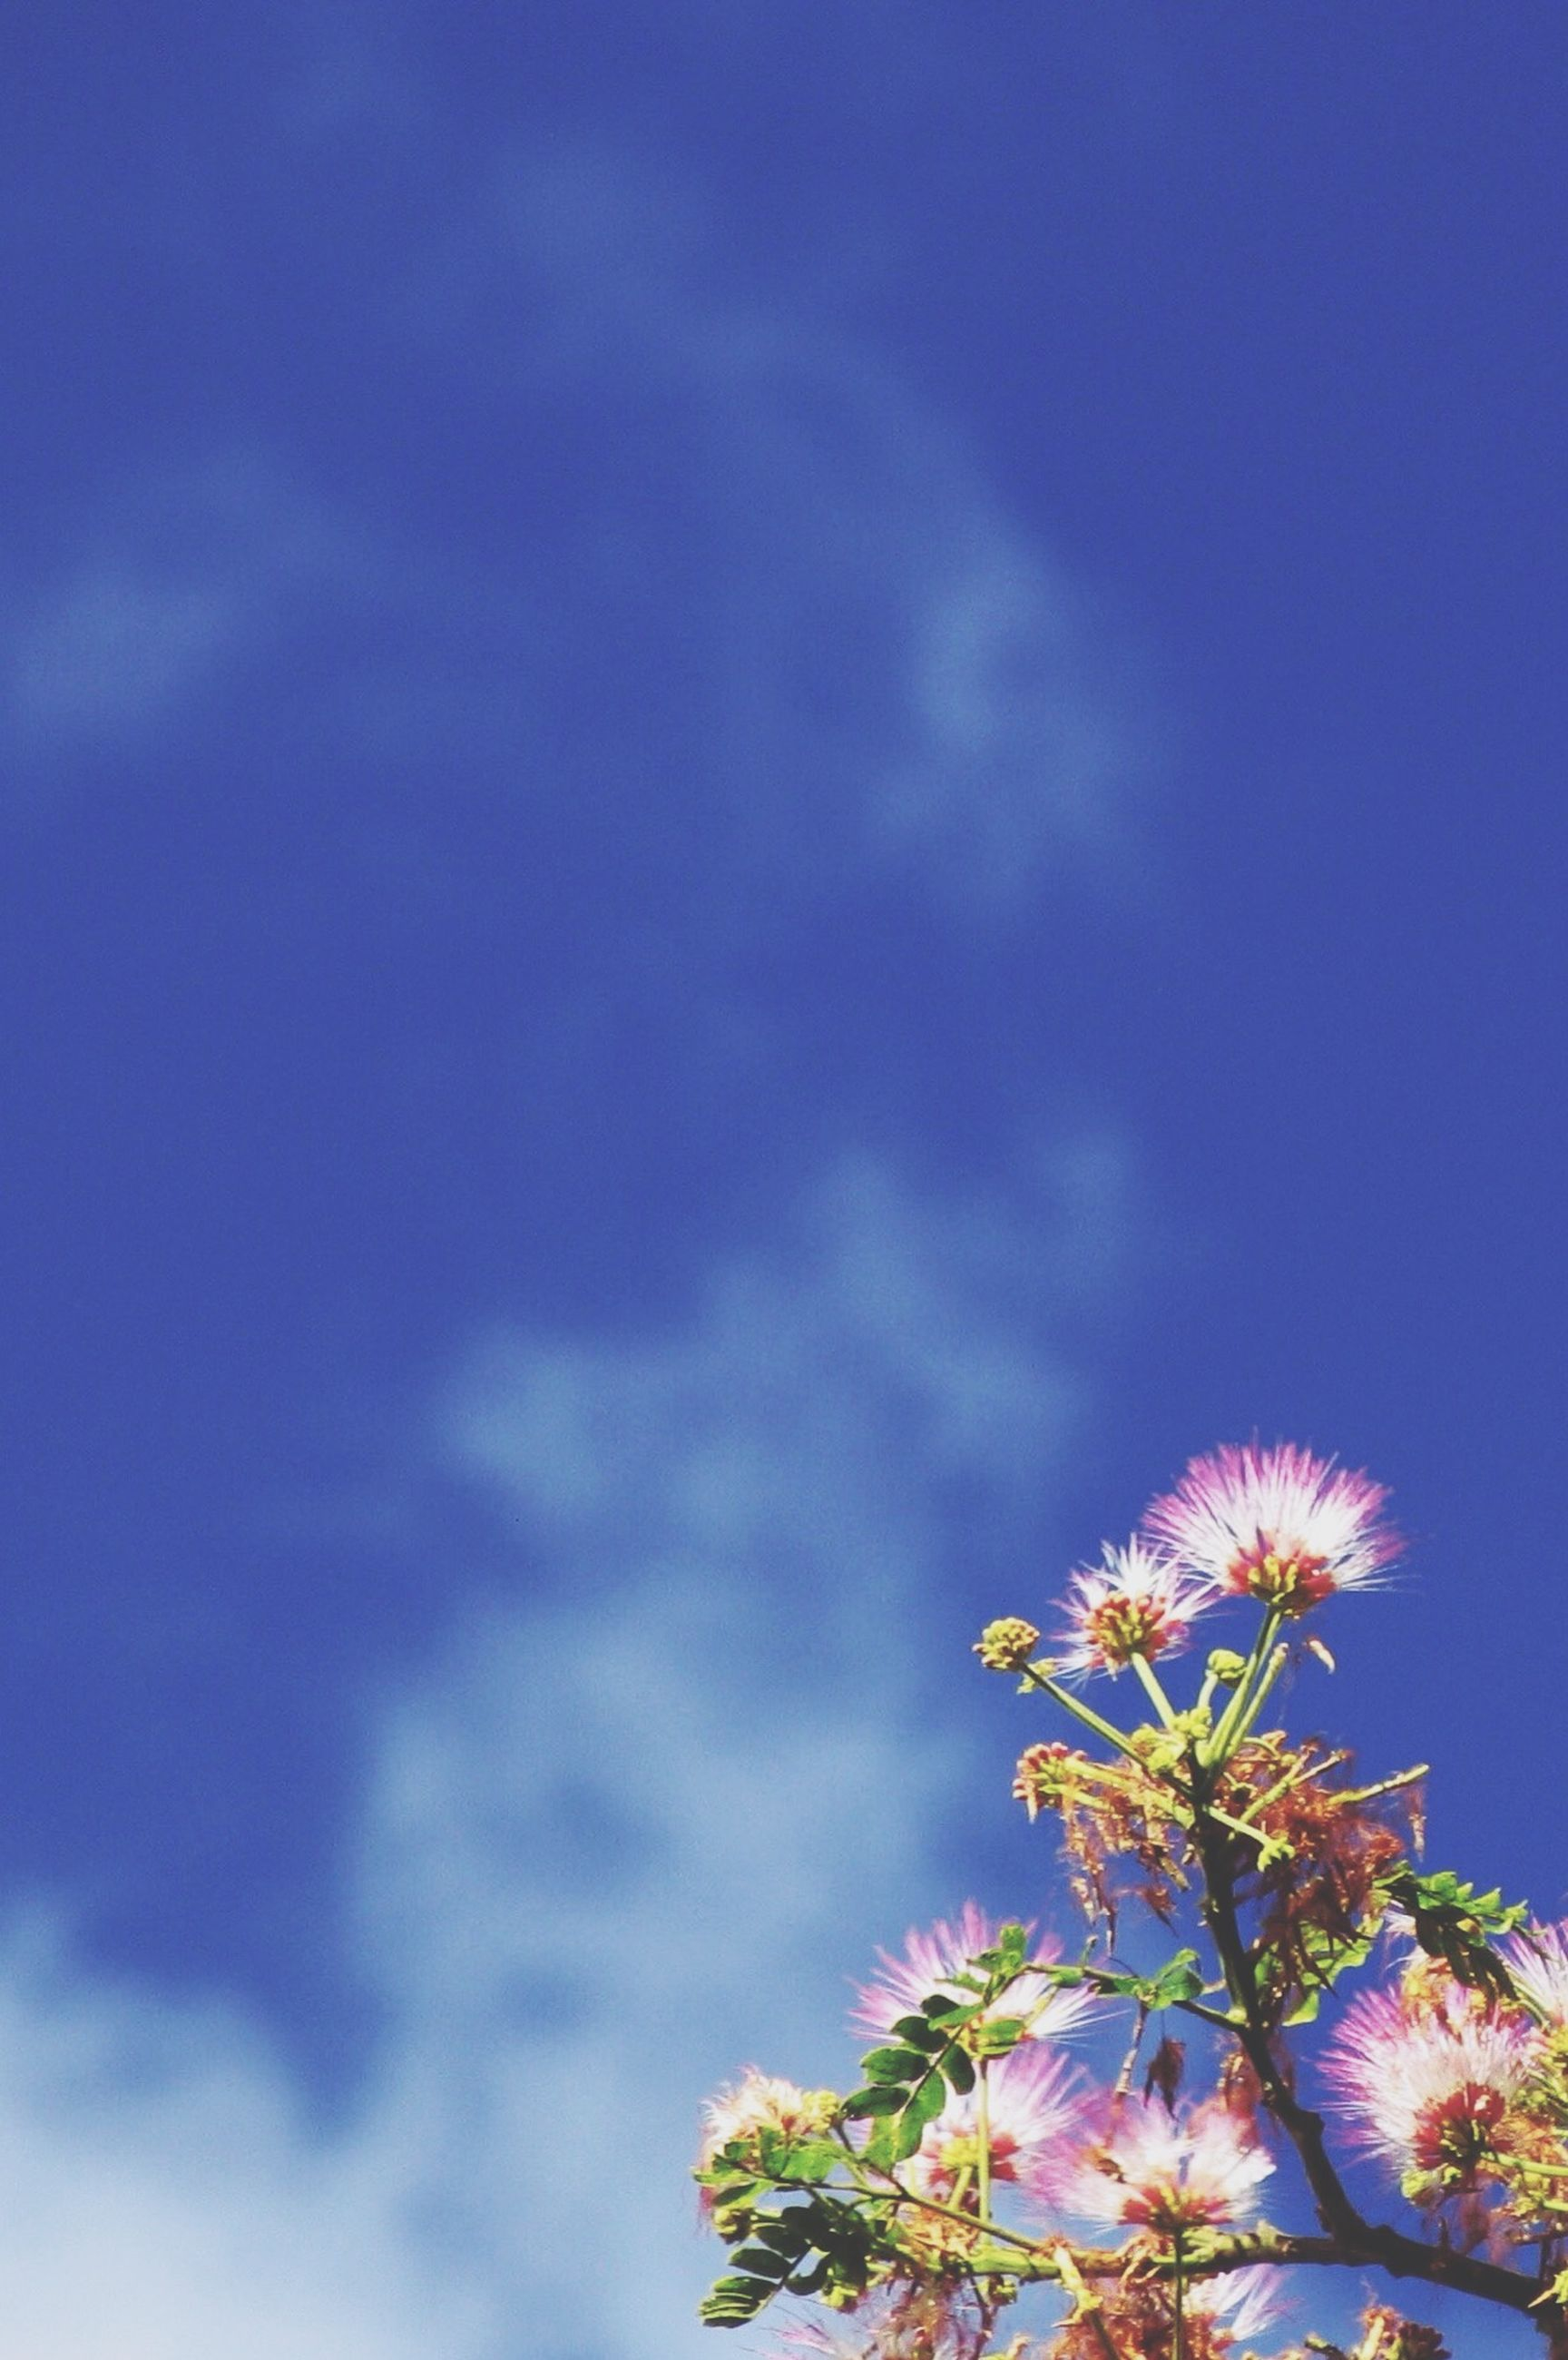 low angle view, growth, sky, blue, beauty in nature, flower, nature, tree, cloud - sky, tranquility, freshness, high section, fragility, outdoors, scenics, no people, branch, day, cloud, plant